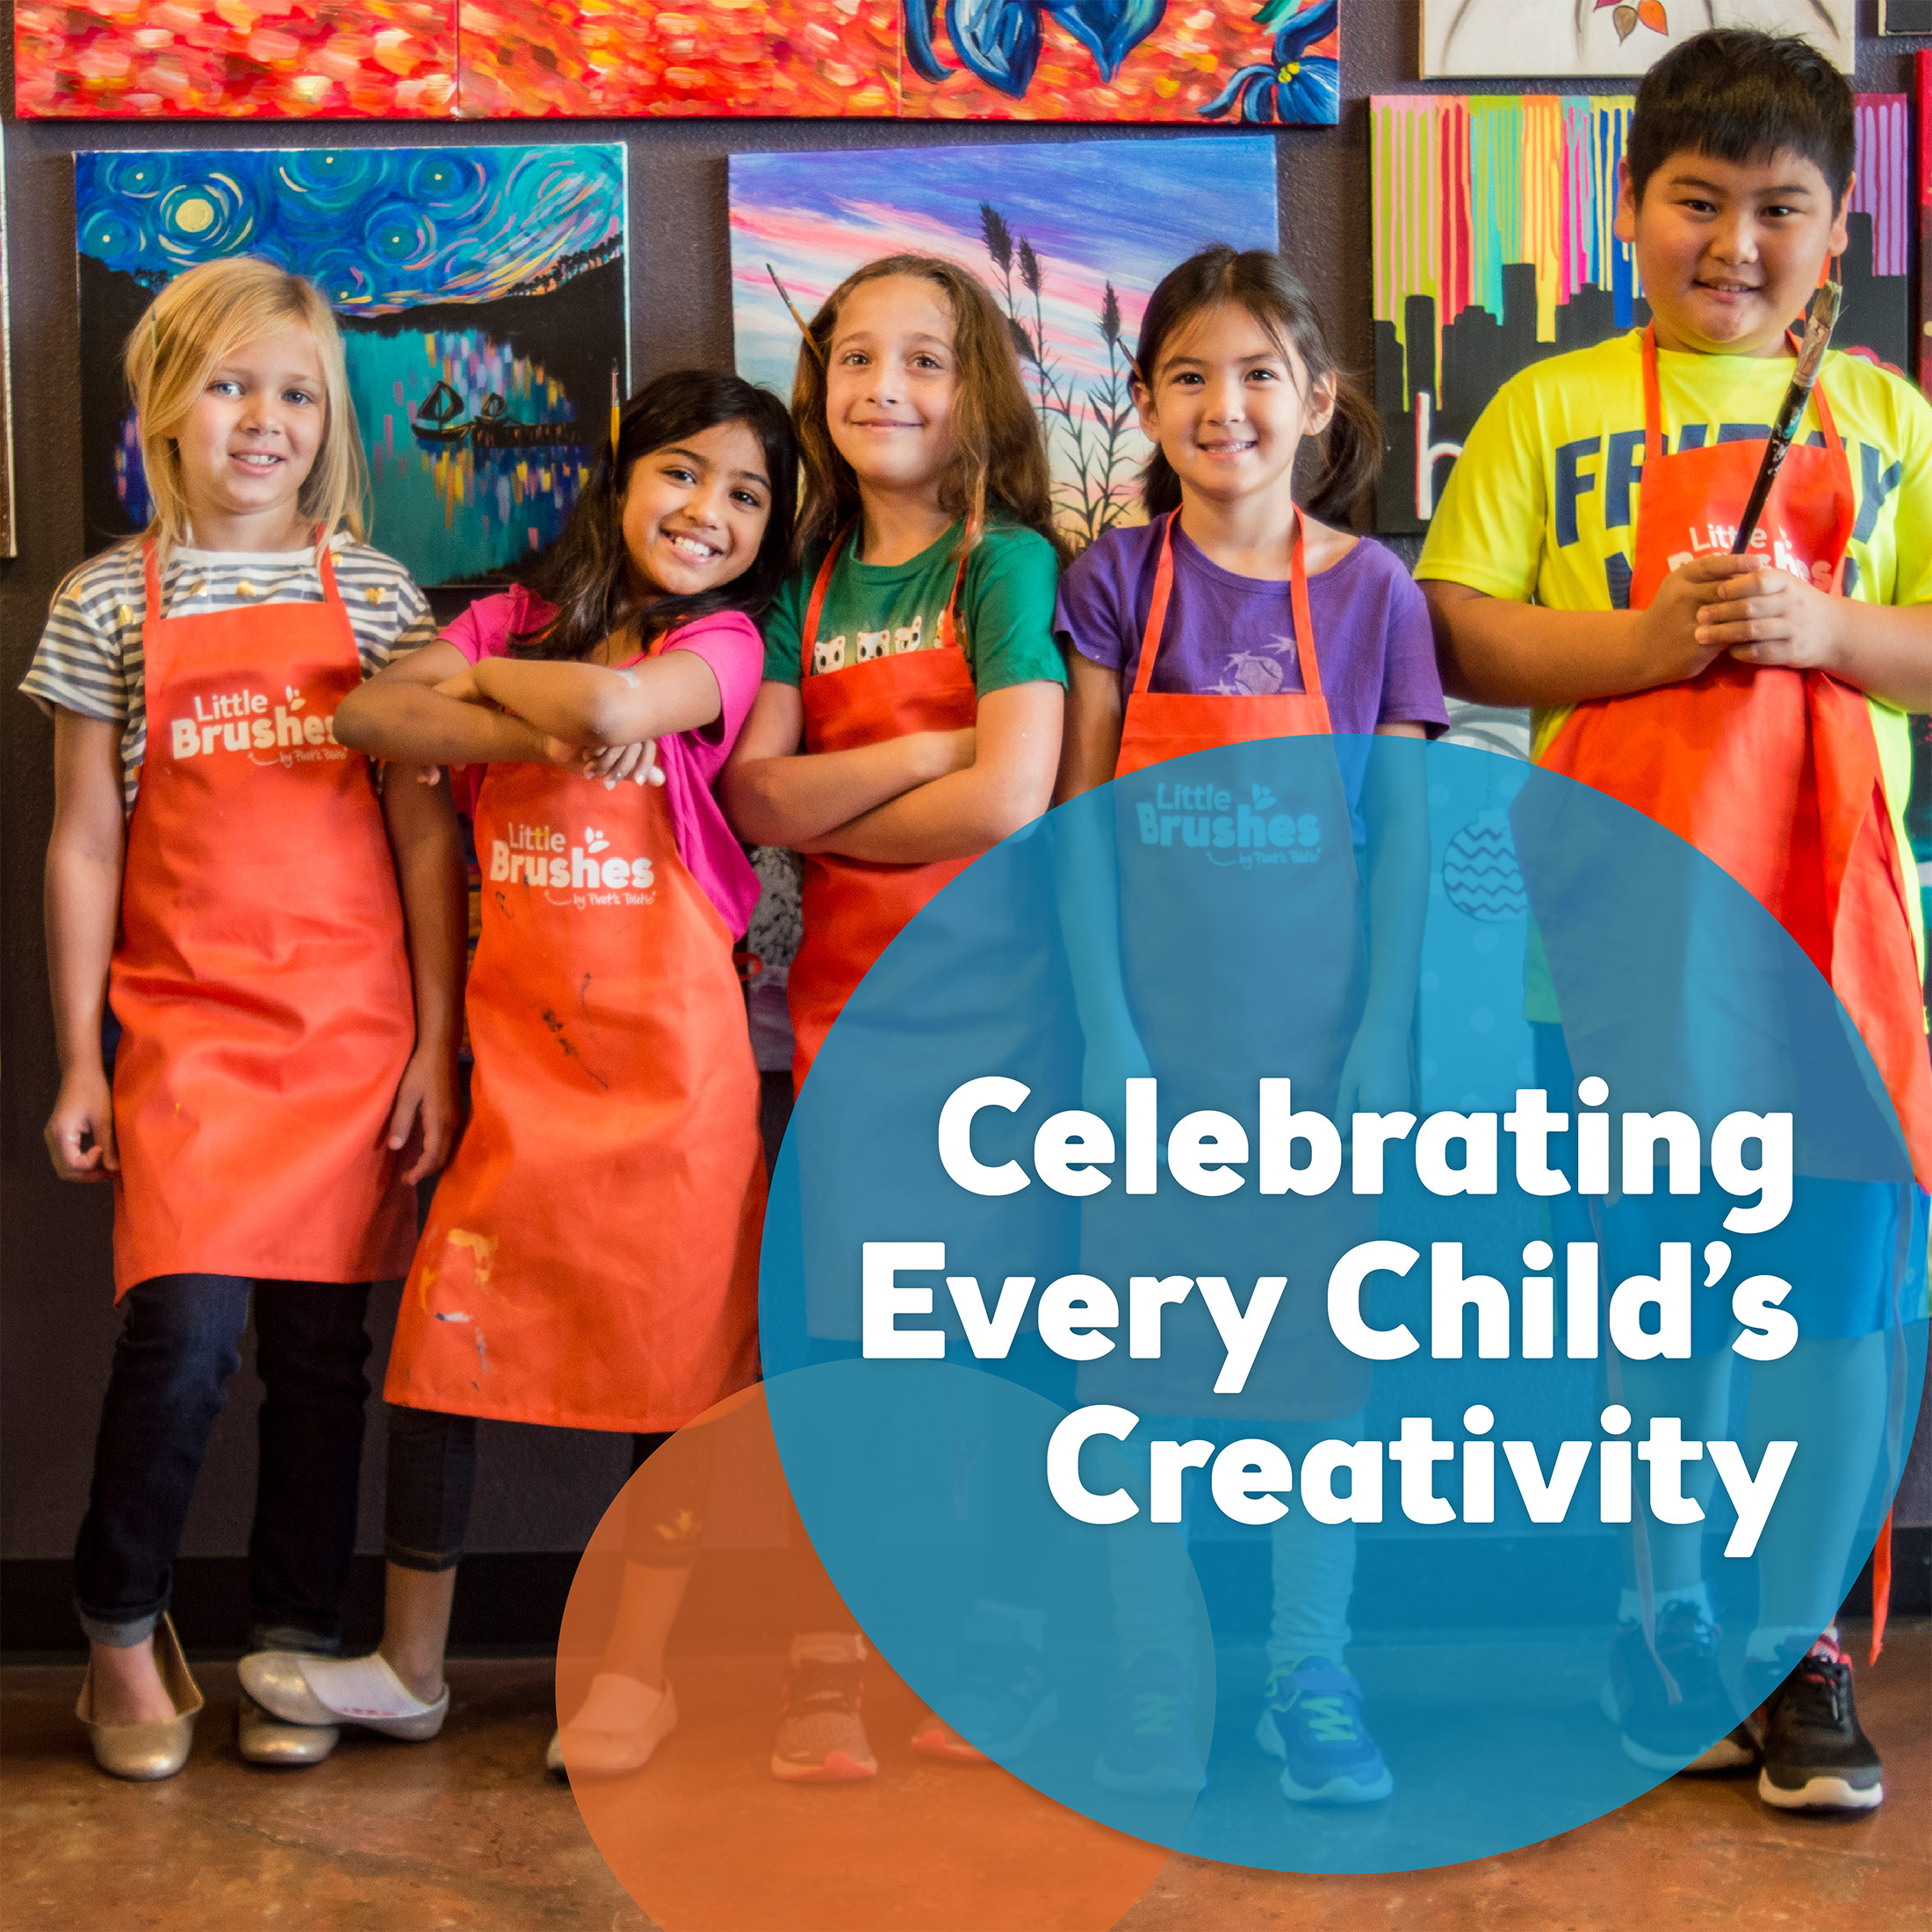 Plan your child's party at Pinot's Palette